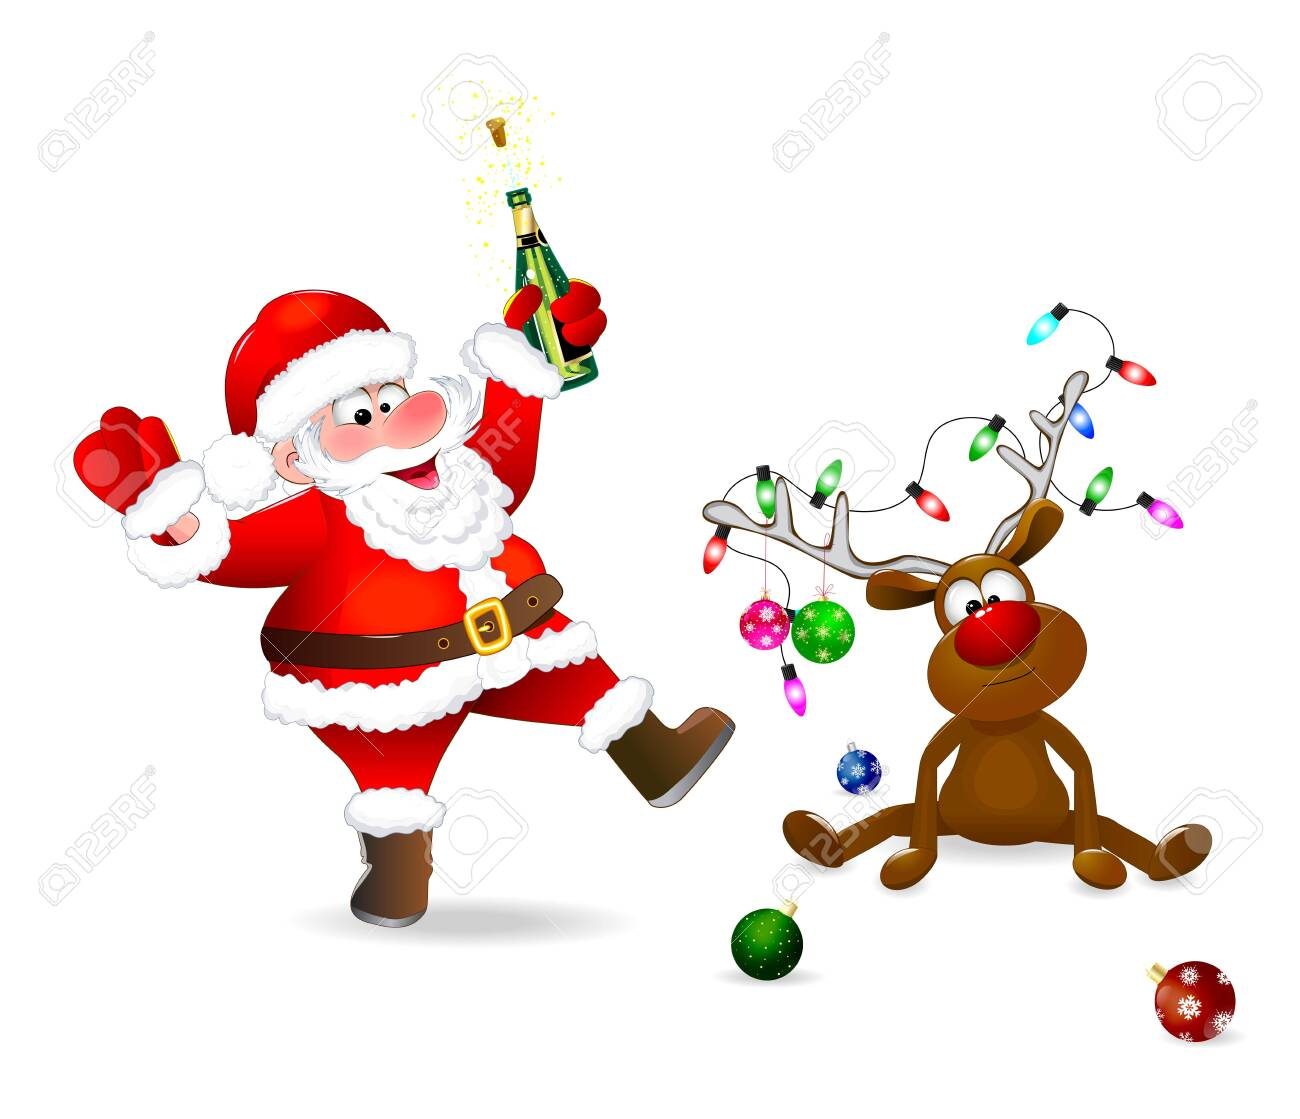 Santa Claus with a bottle in his hand. The deer is decorated with Christmas balls and a garland of lights. Santa and deer on a white background. - 135647769